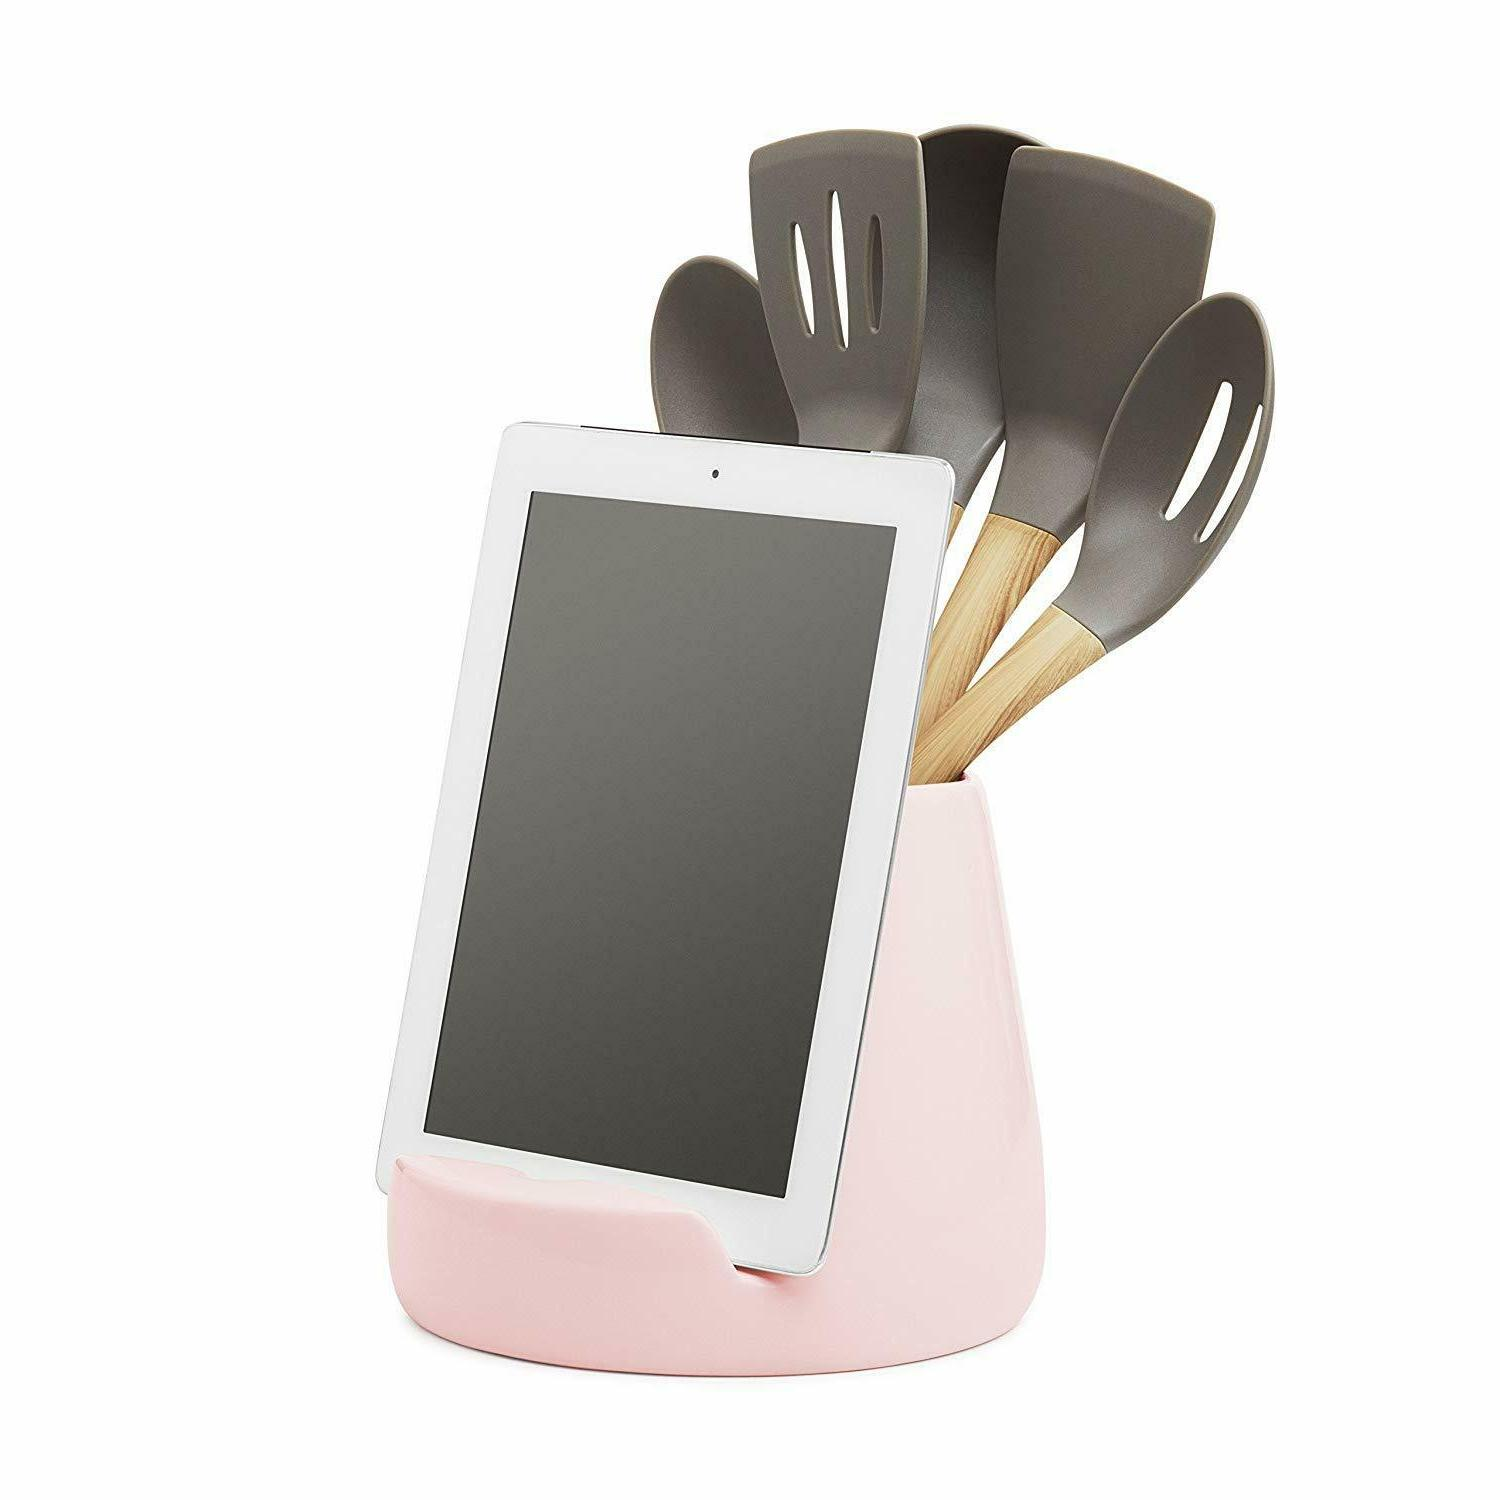 ceramic kitchen ipad android tablets stand